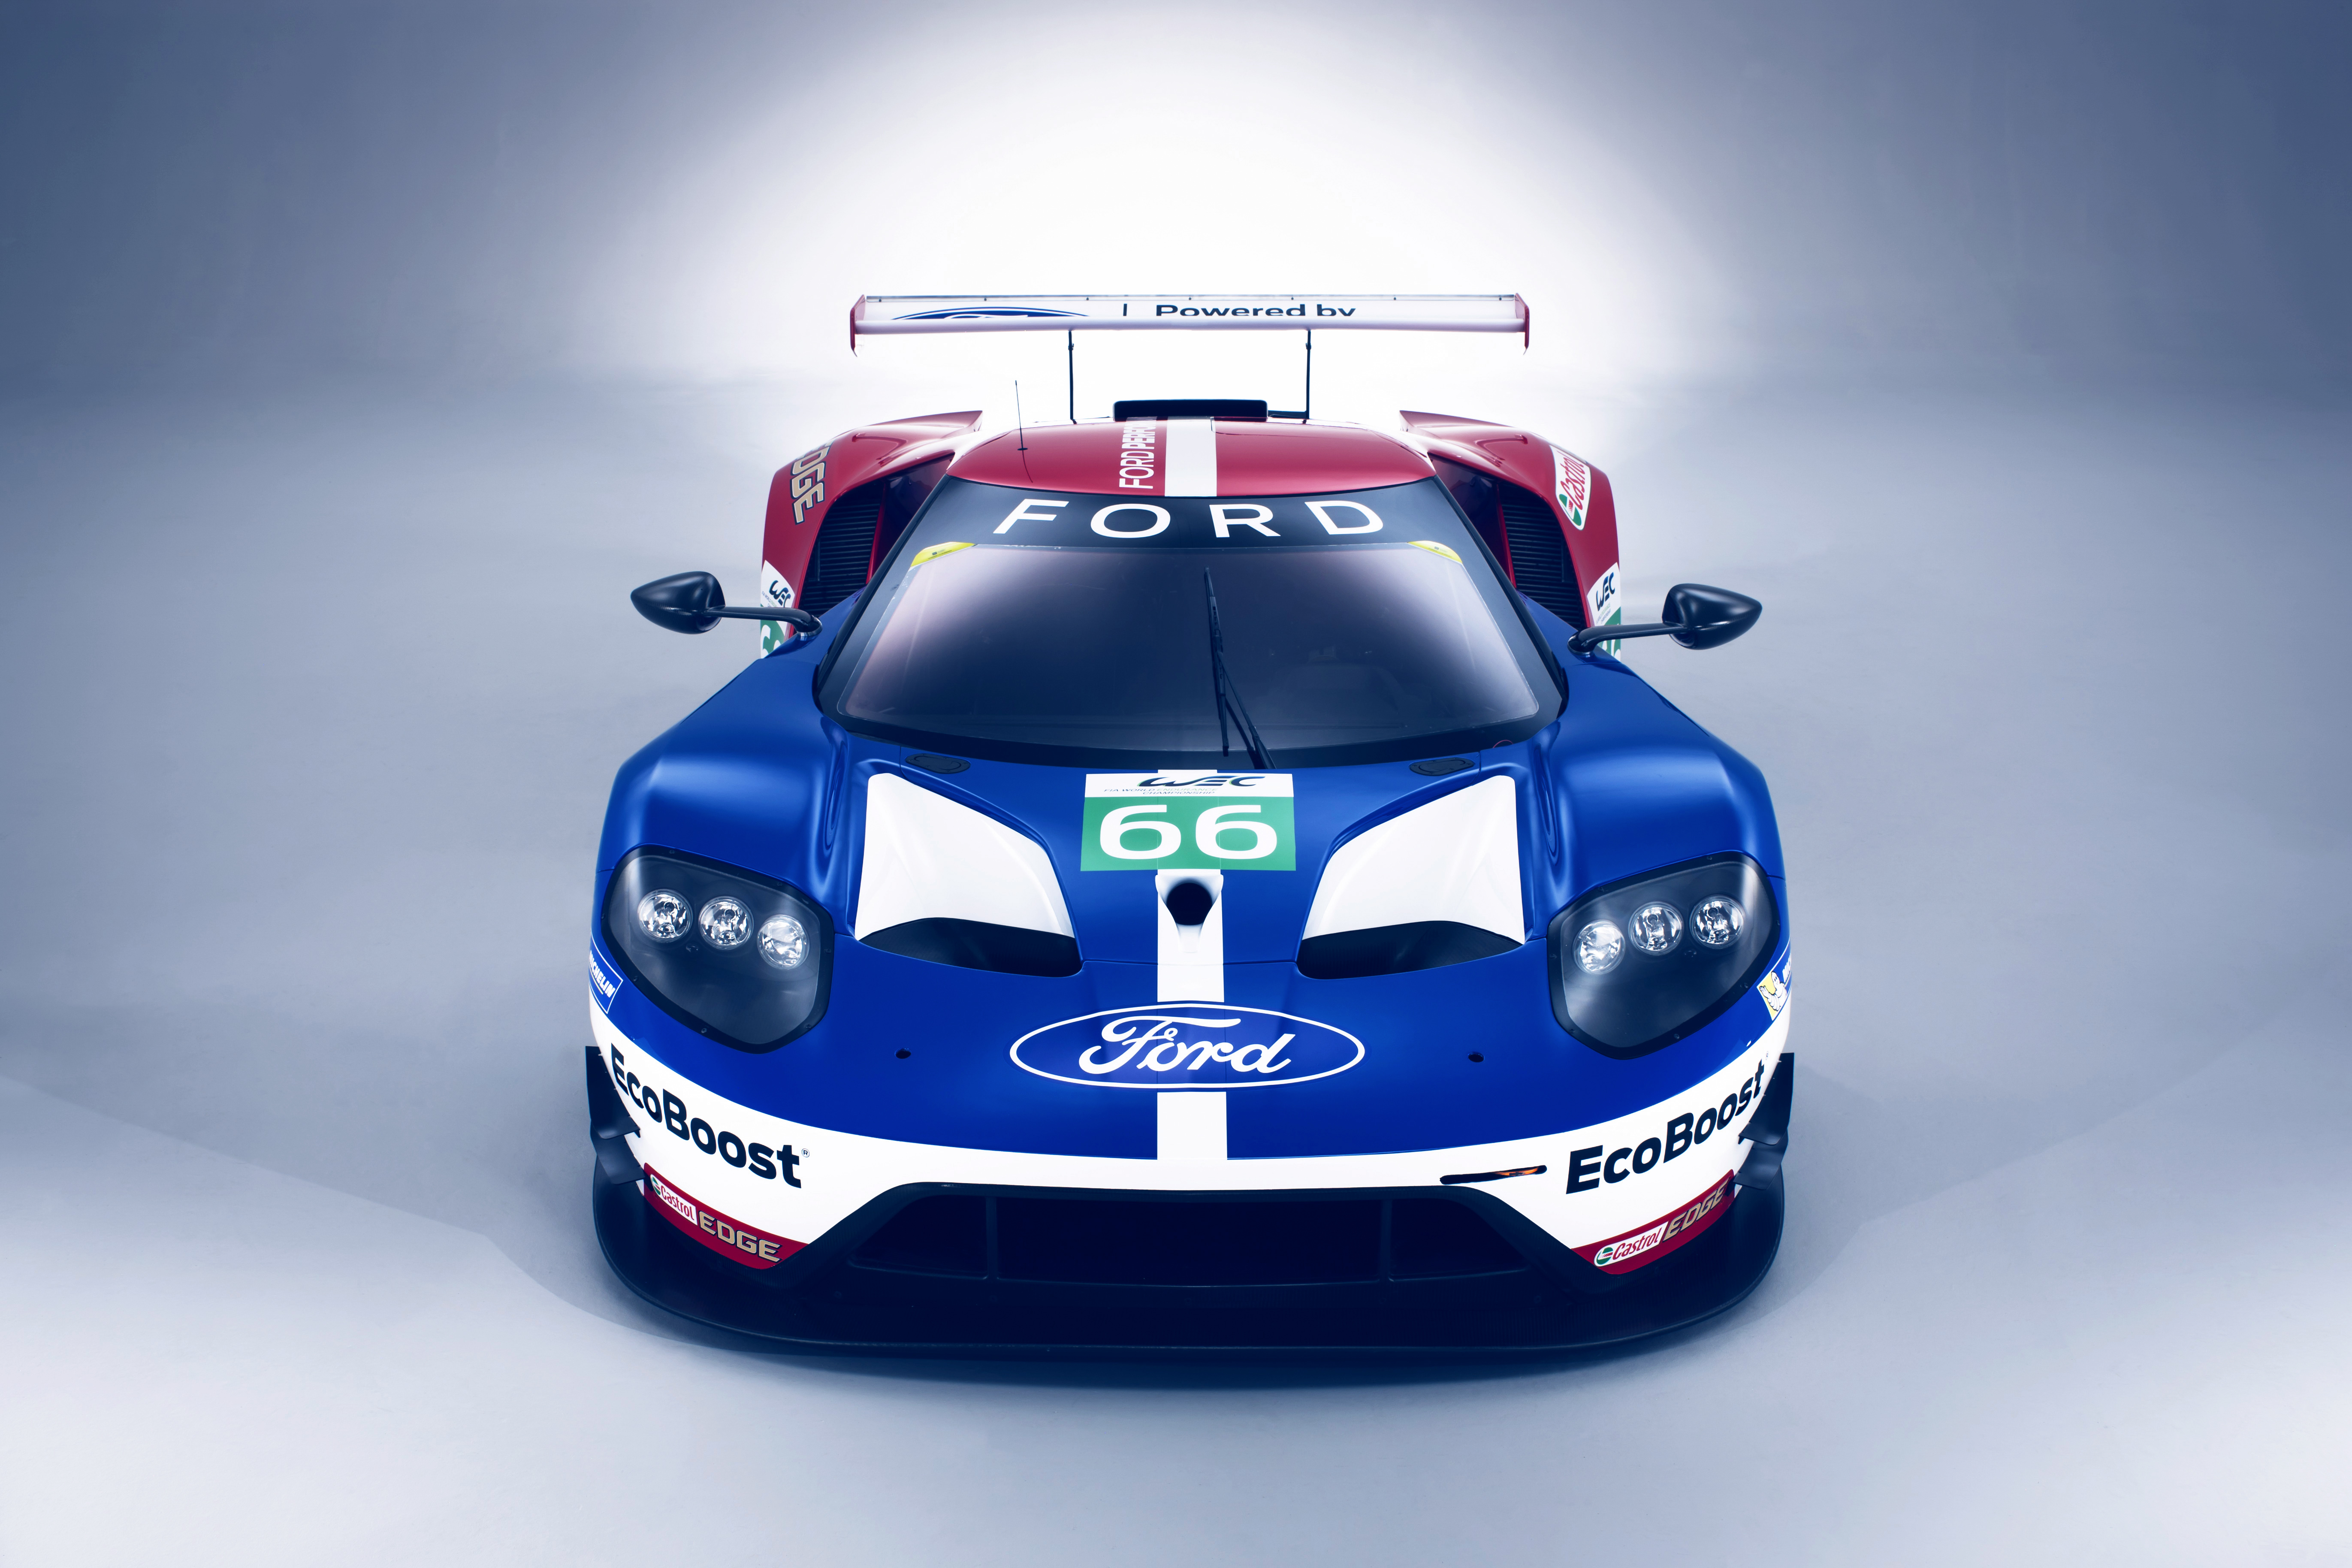 File:Ford GT (2nd Gen.) LM GTE Pro 008.jpg - Wikimedia Commons on ford model t, ford escape, ford mustang, ford gt40, ford fusion, ford concept, ford gtx1, ford crown victoria, ford supercar, ford gt4, ford gt1000, ford gtr, ford gt500, ford gran turismo, ford gt350, ford mustanggt, ford evos, ford lightning, ford maverick,